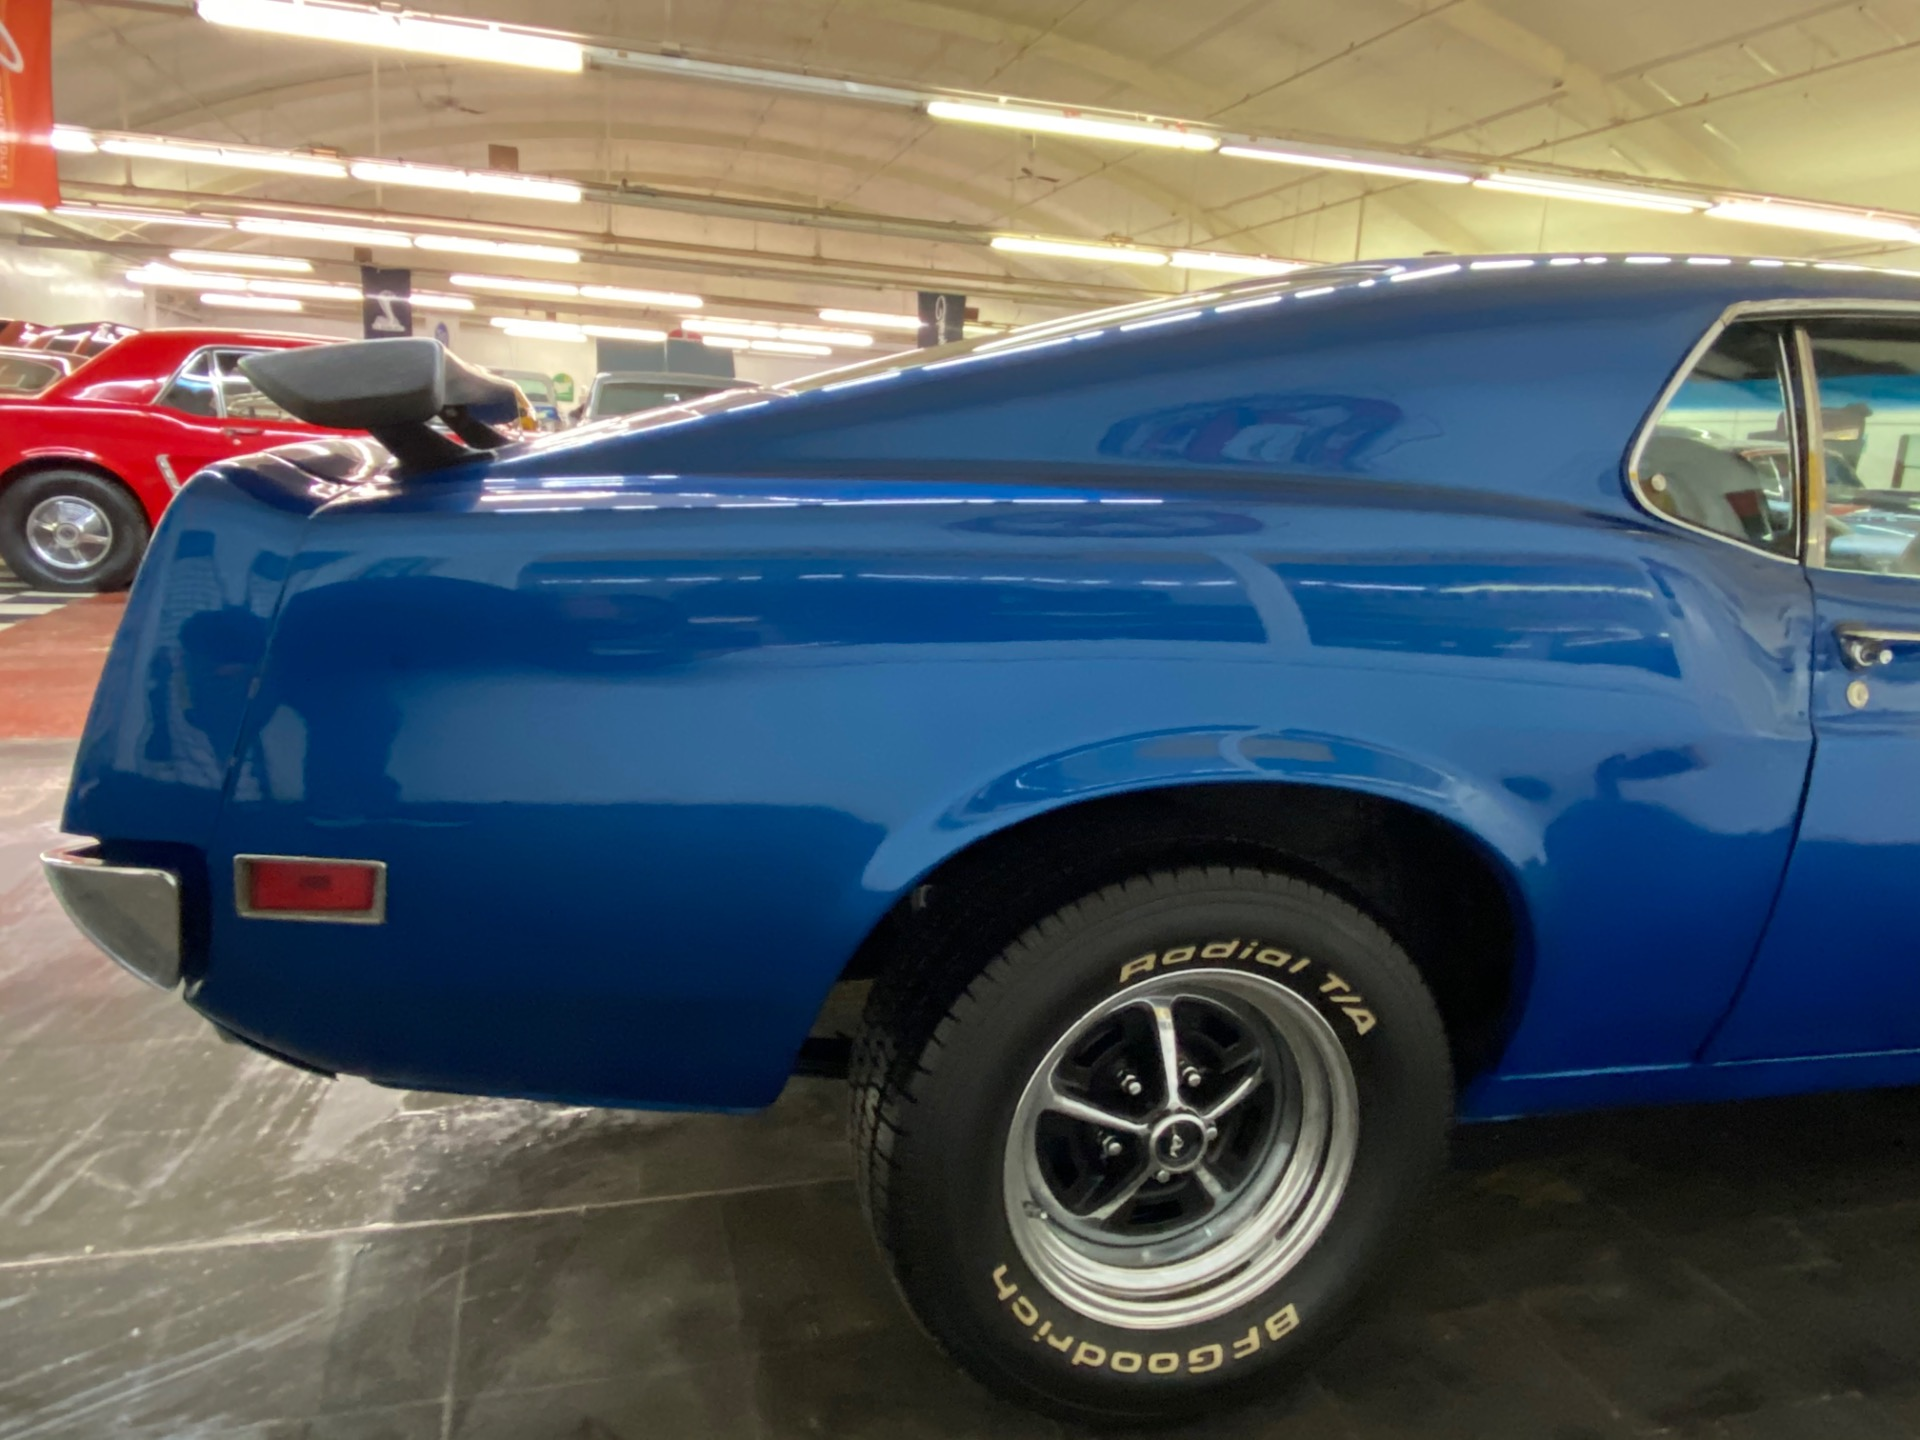 Used 1970 Ford Mustang - 351W ENGINE - AUTO TRANS - RUNS AND DRIVES GREAT - SEE VIDEO | Mundelein, IL